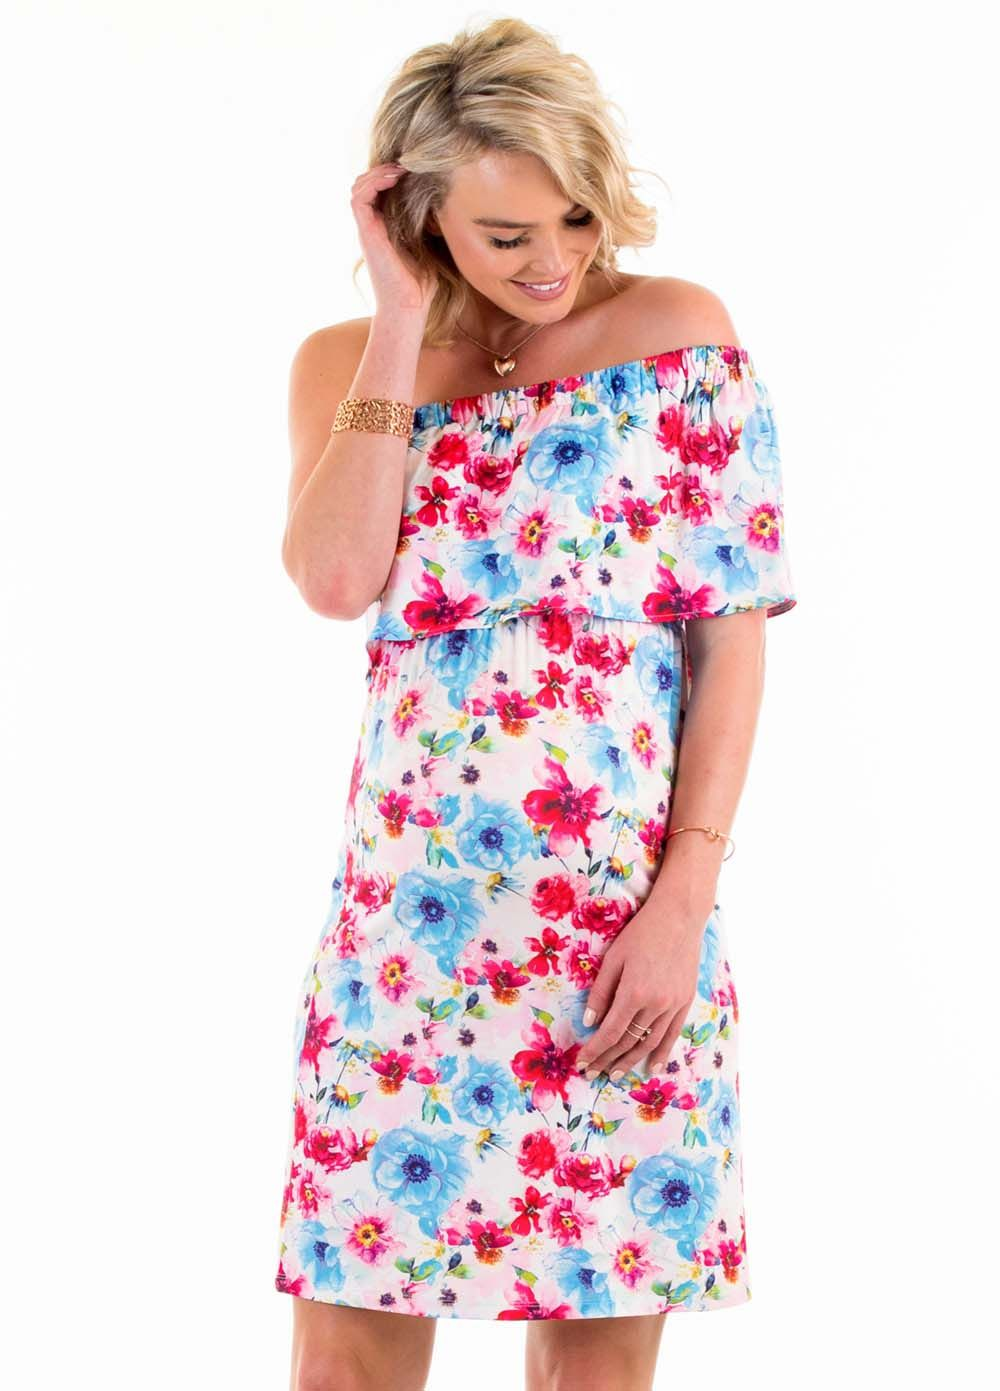 3dc6743c57b Floressa - Clara Nursing Dress | Clothes | Fashion, Nursing dress ...